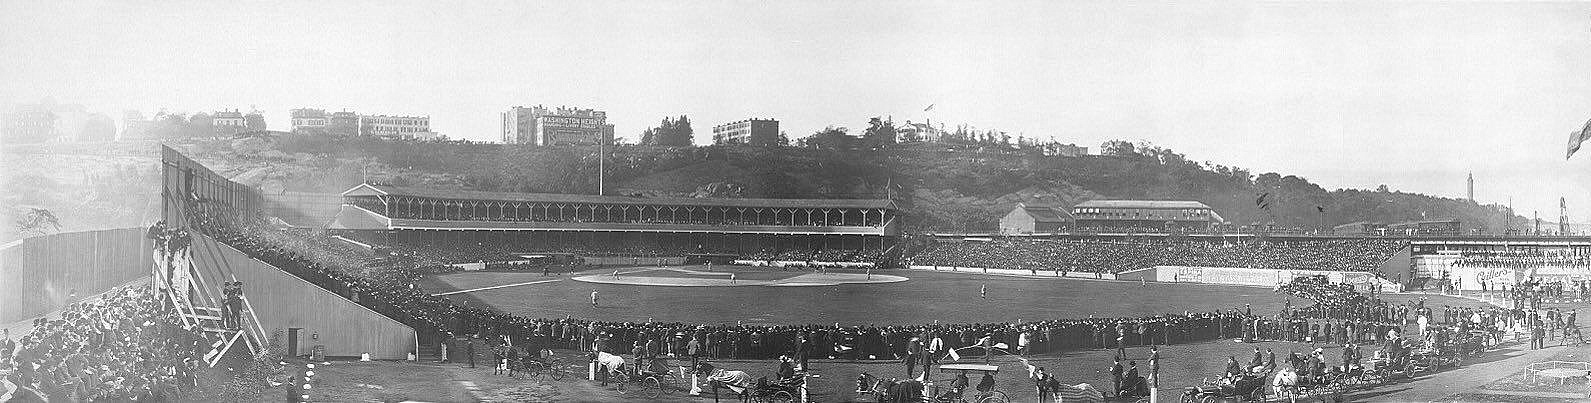 Polo Grounds 1900's